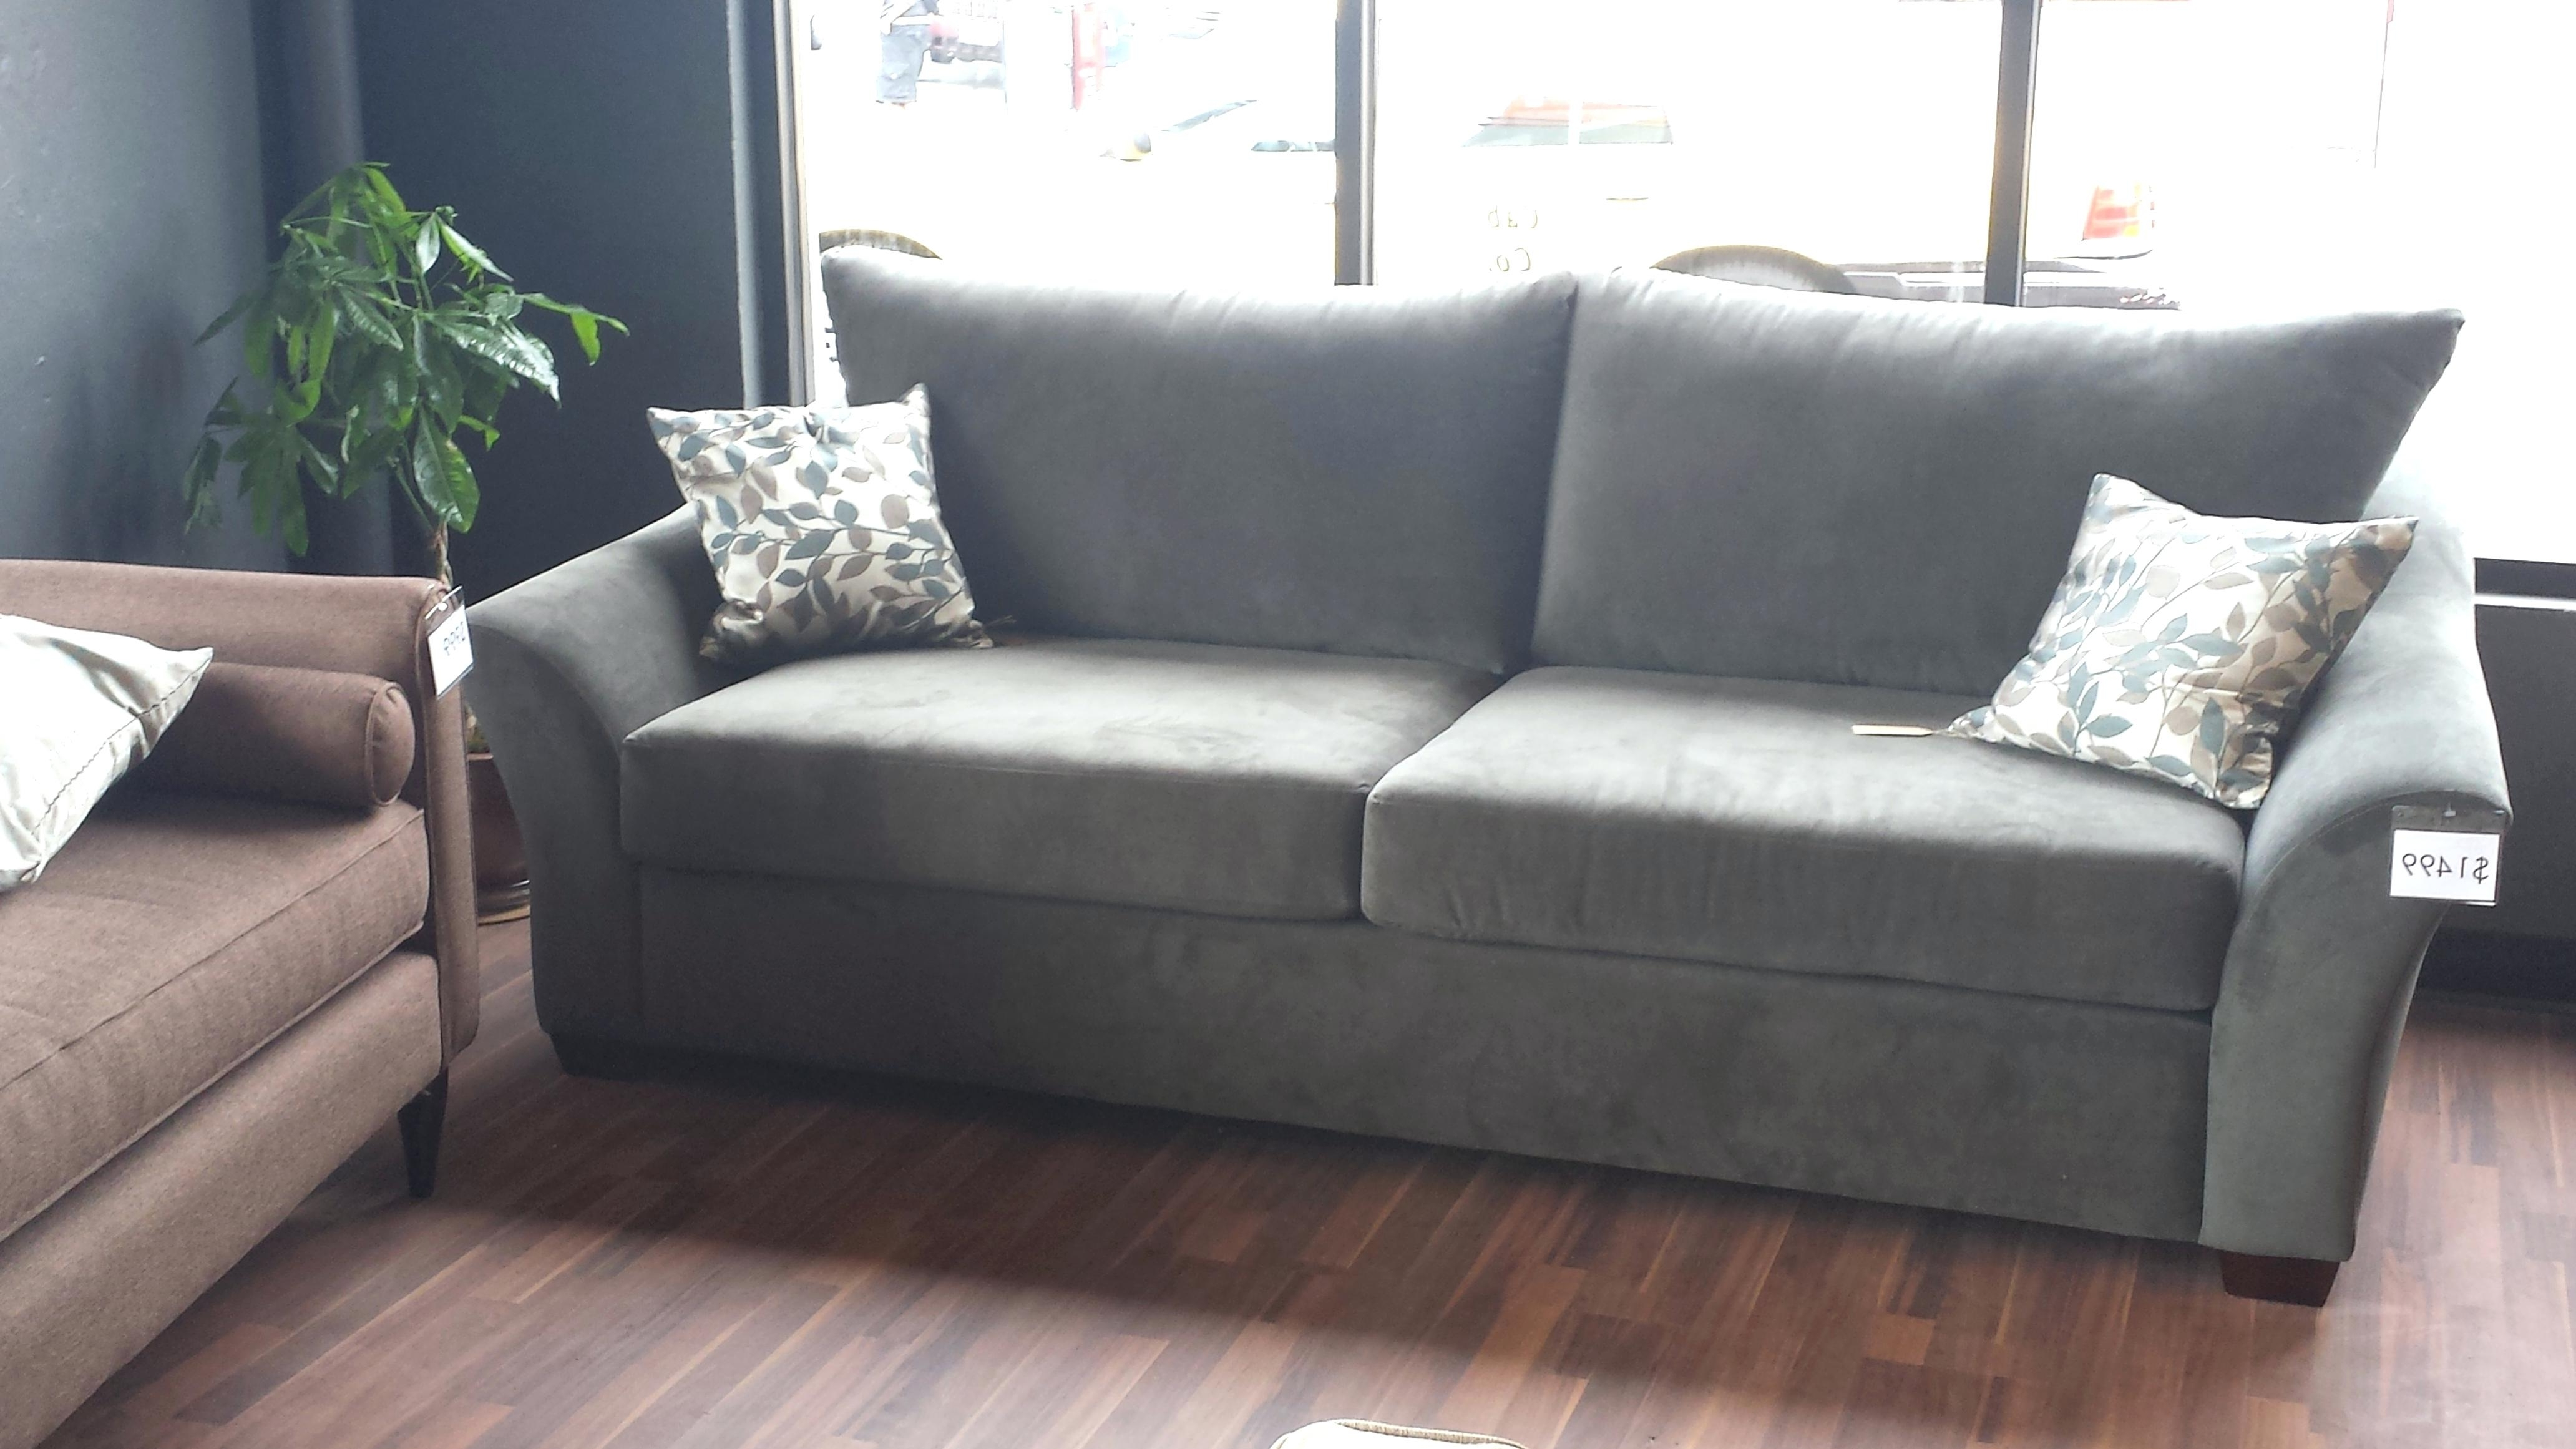 2018 Deep Cushion Sofas Intended For Deep Sectional Couch – Ncgeconference (View 16 of 20)